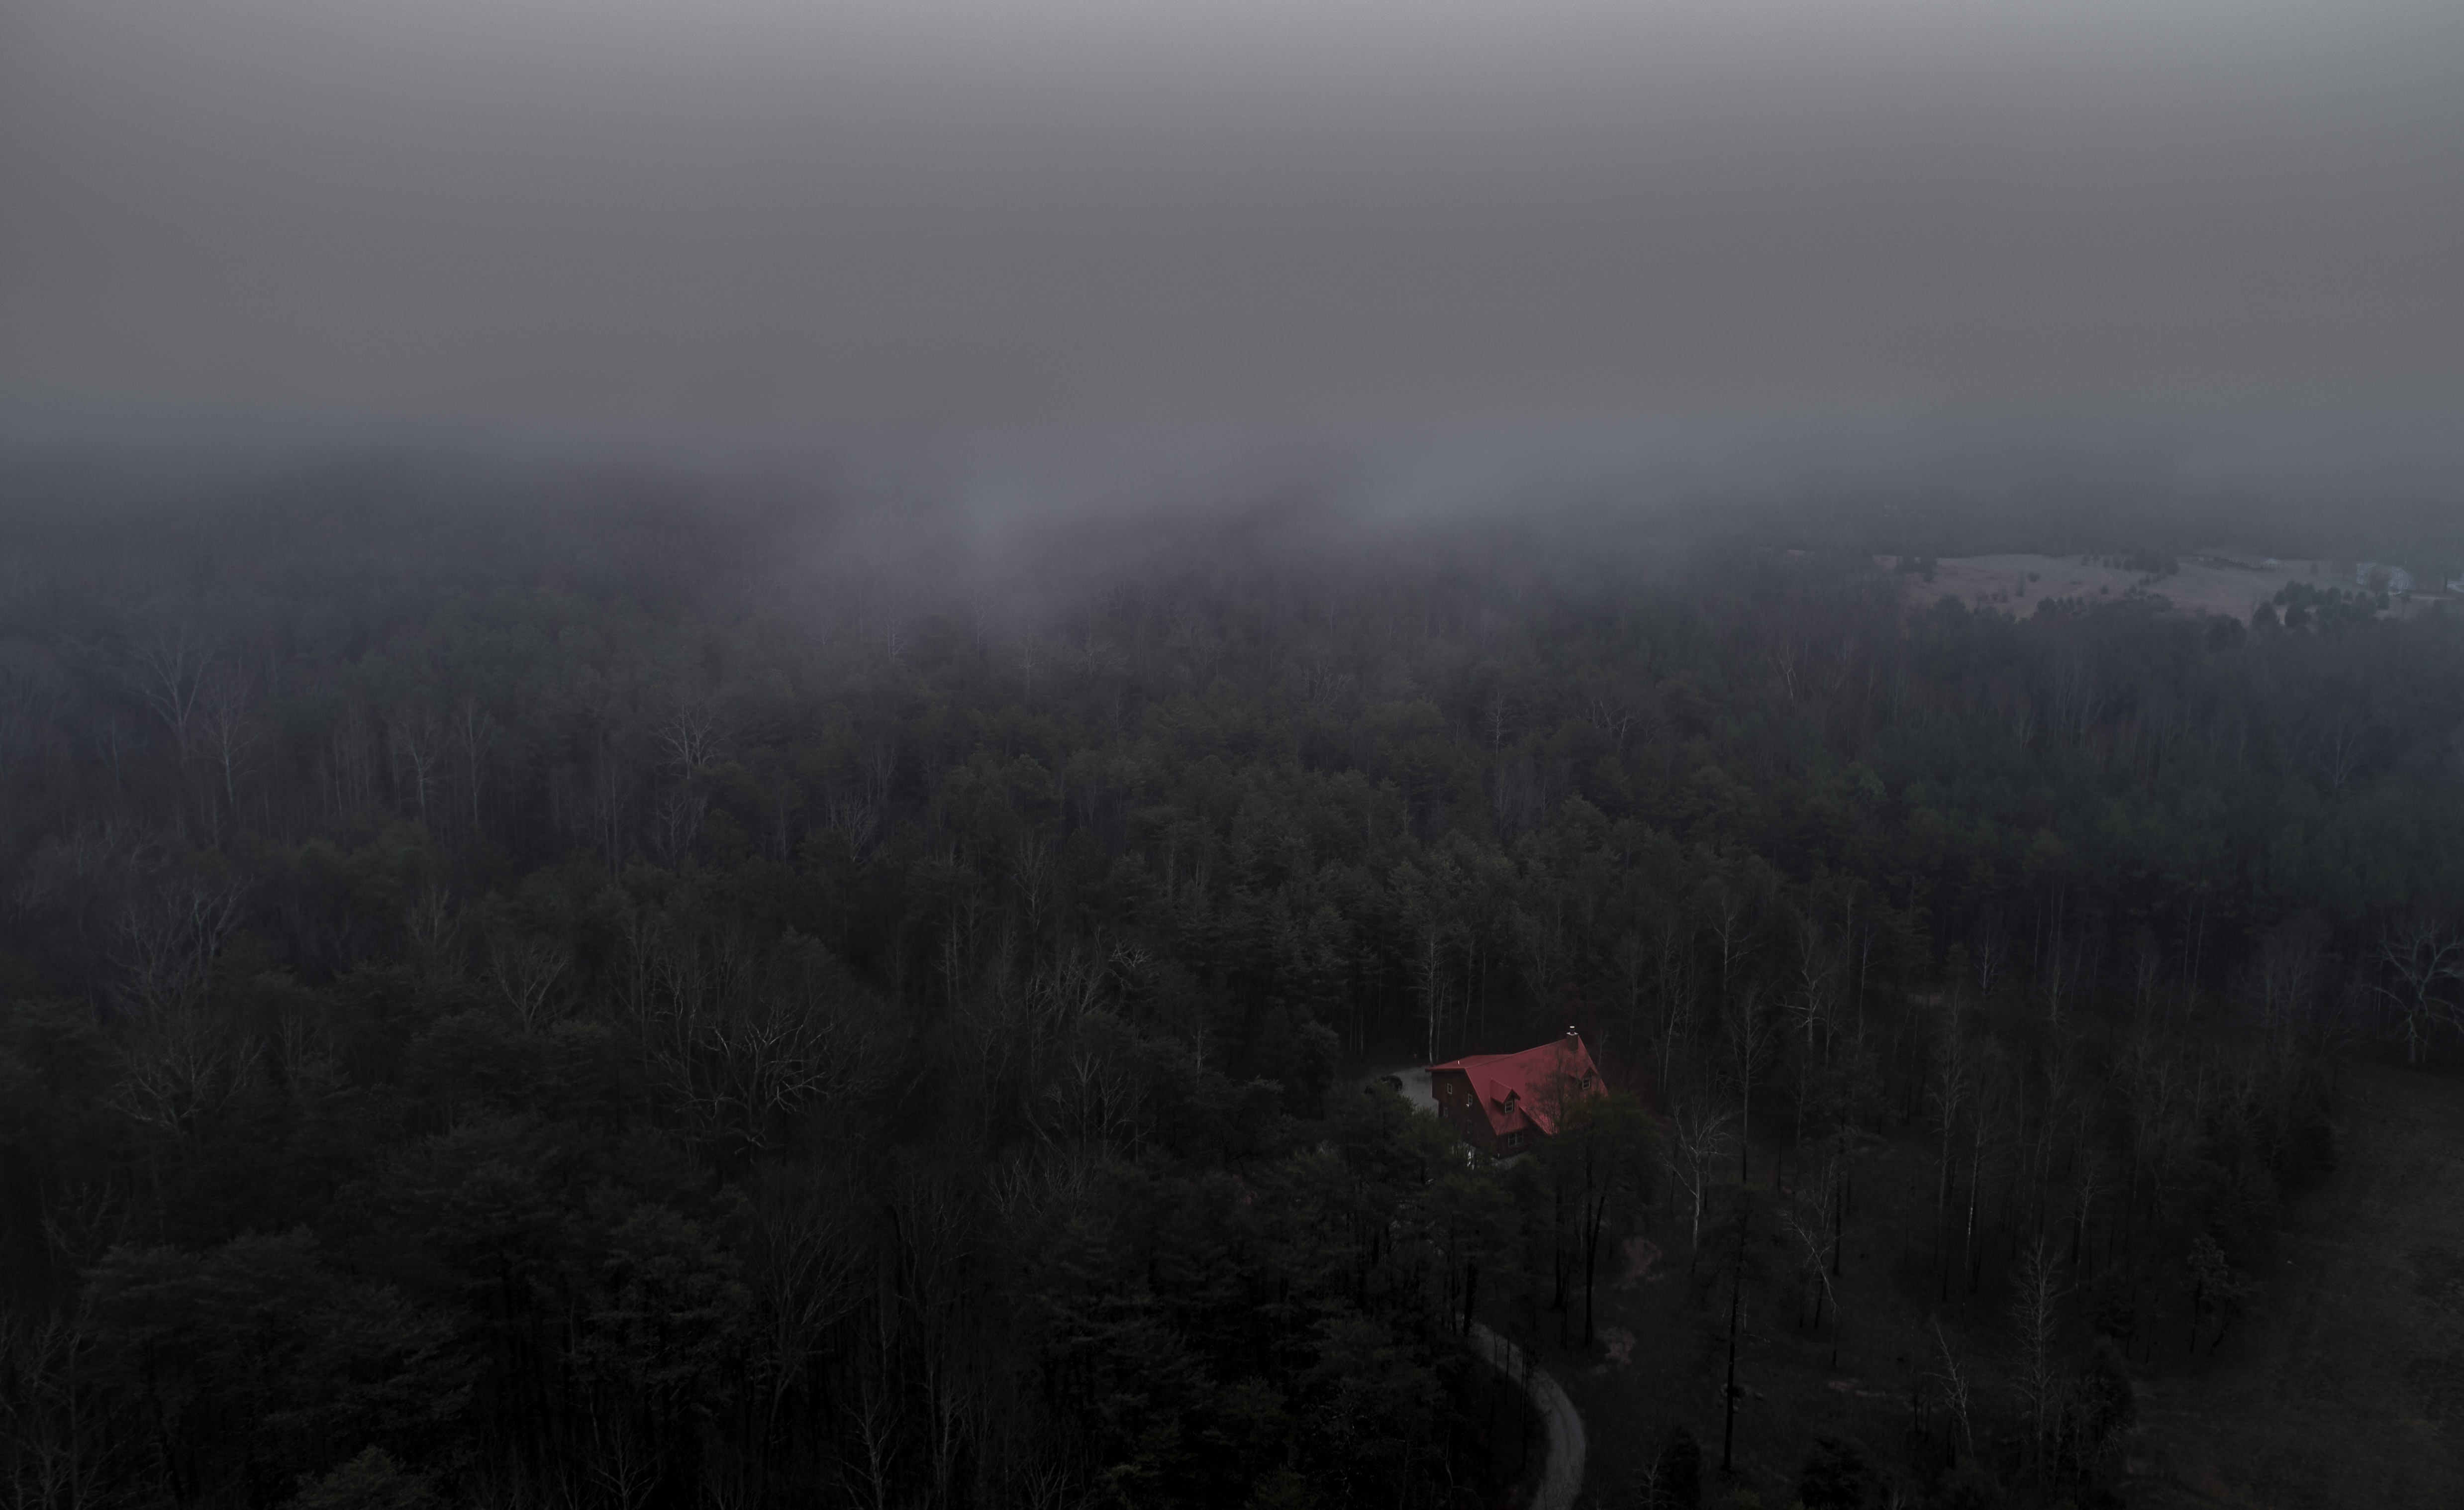 A house in the middle of the forest with trees covered by fog in LaFayette, Georgia, United States